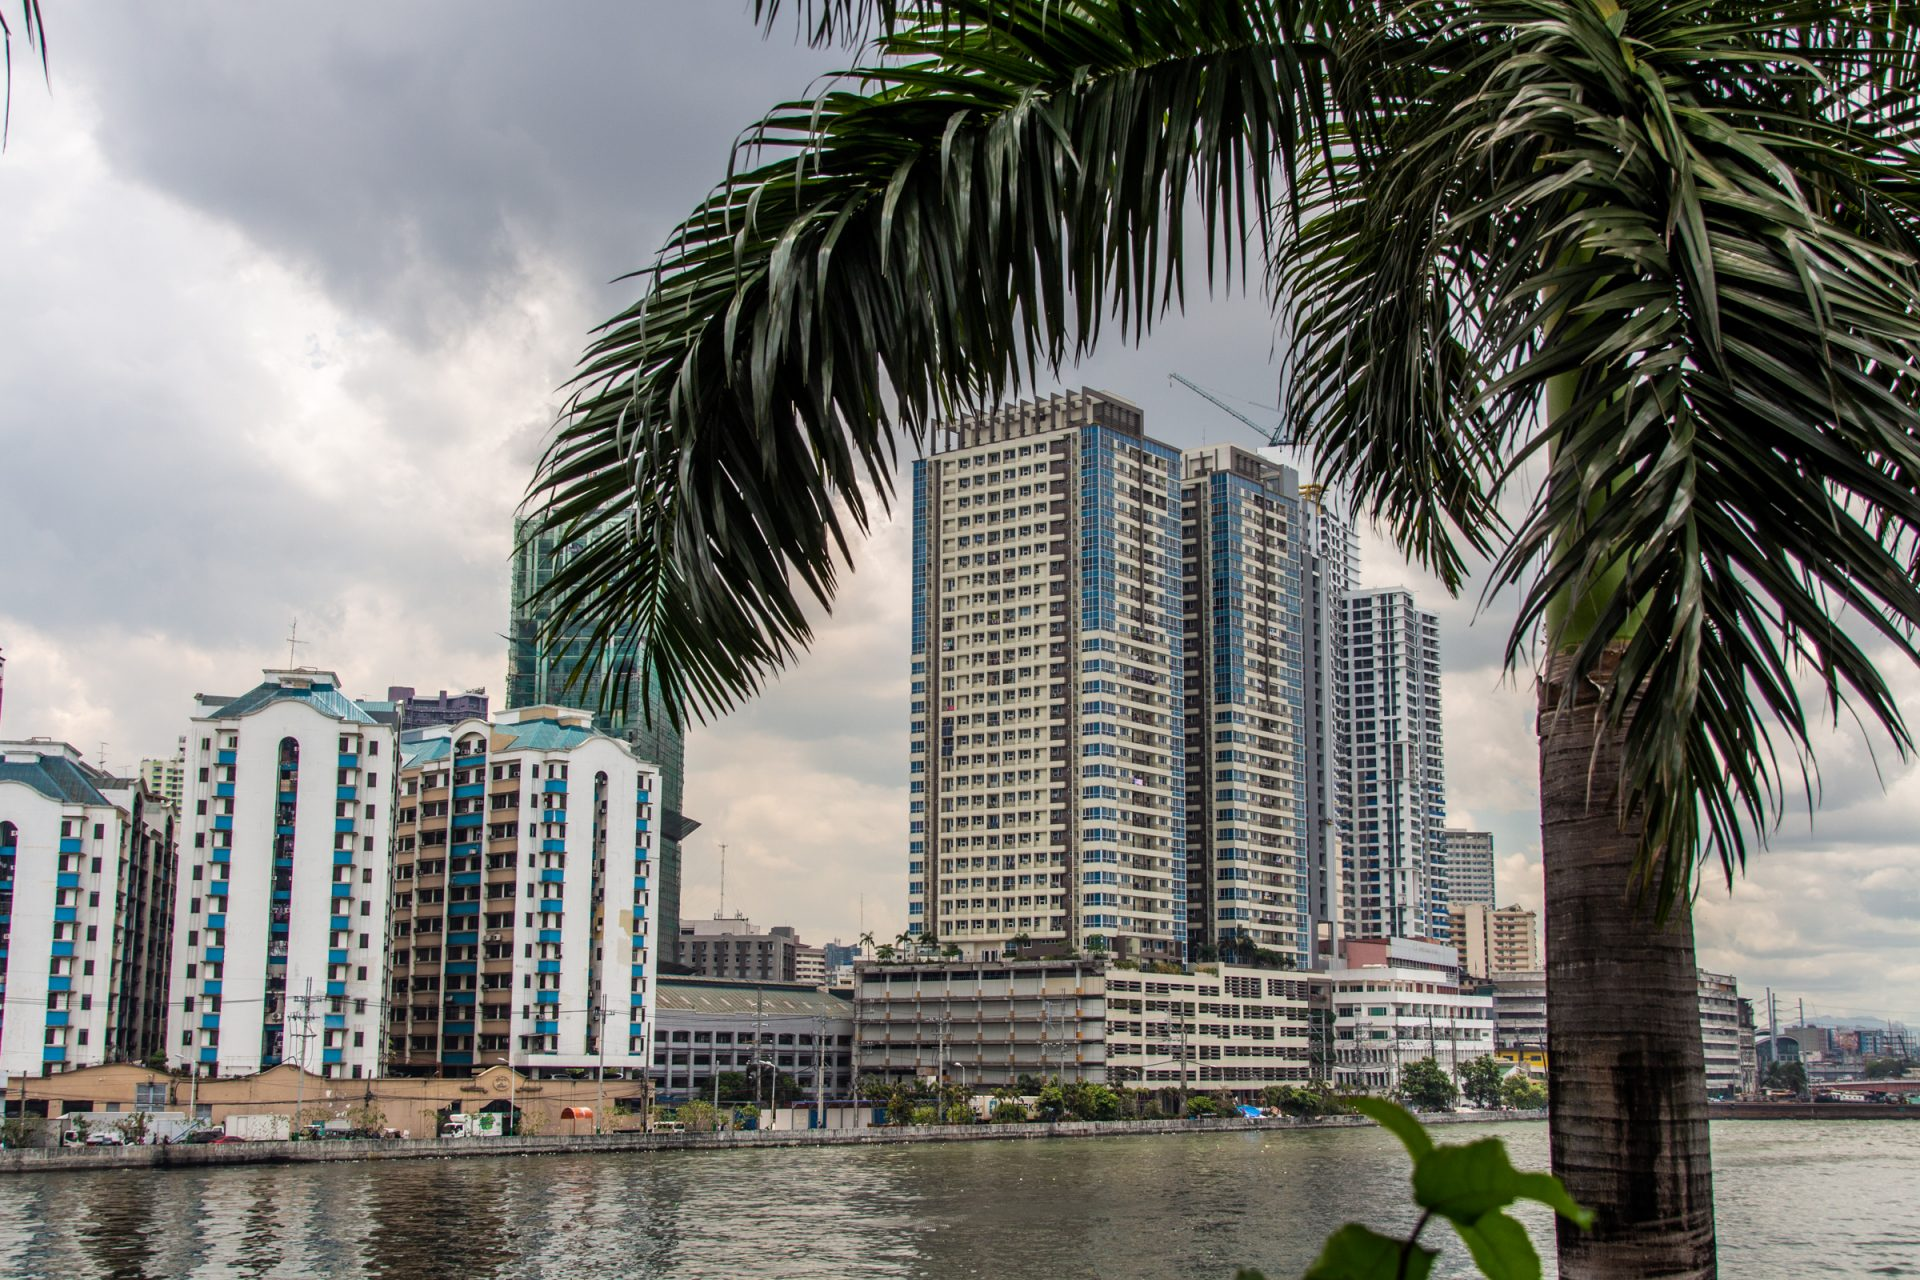 Tall Buildings On Shore Beyond Palm Tree